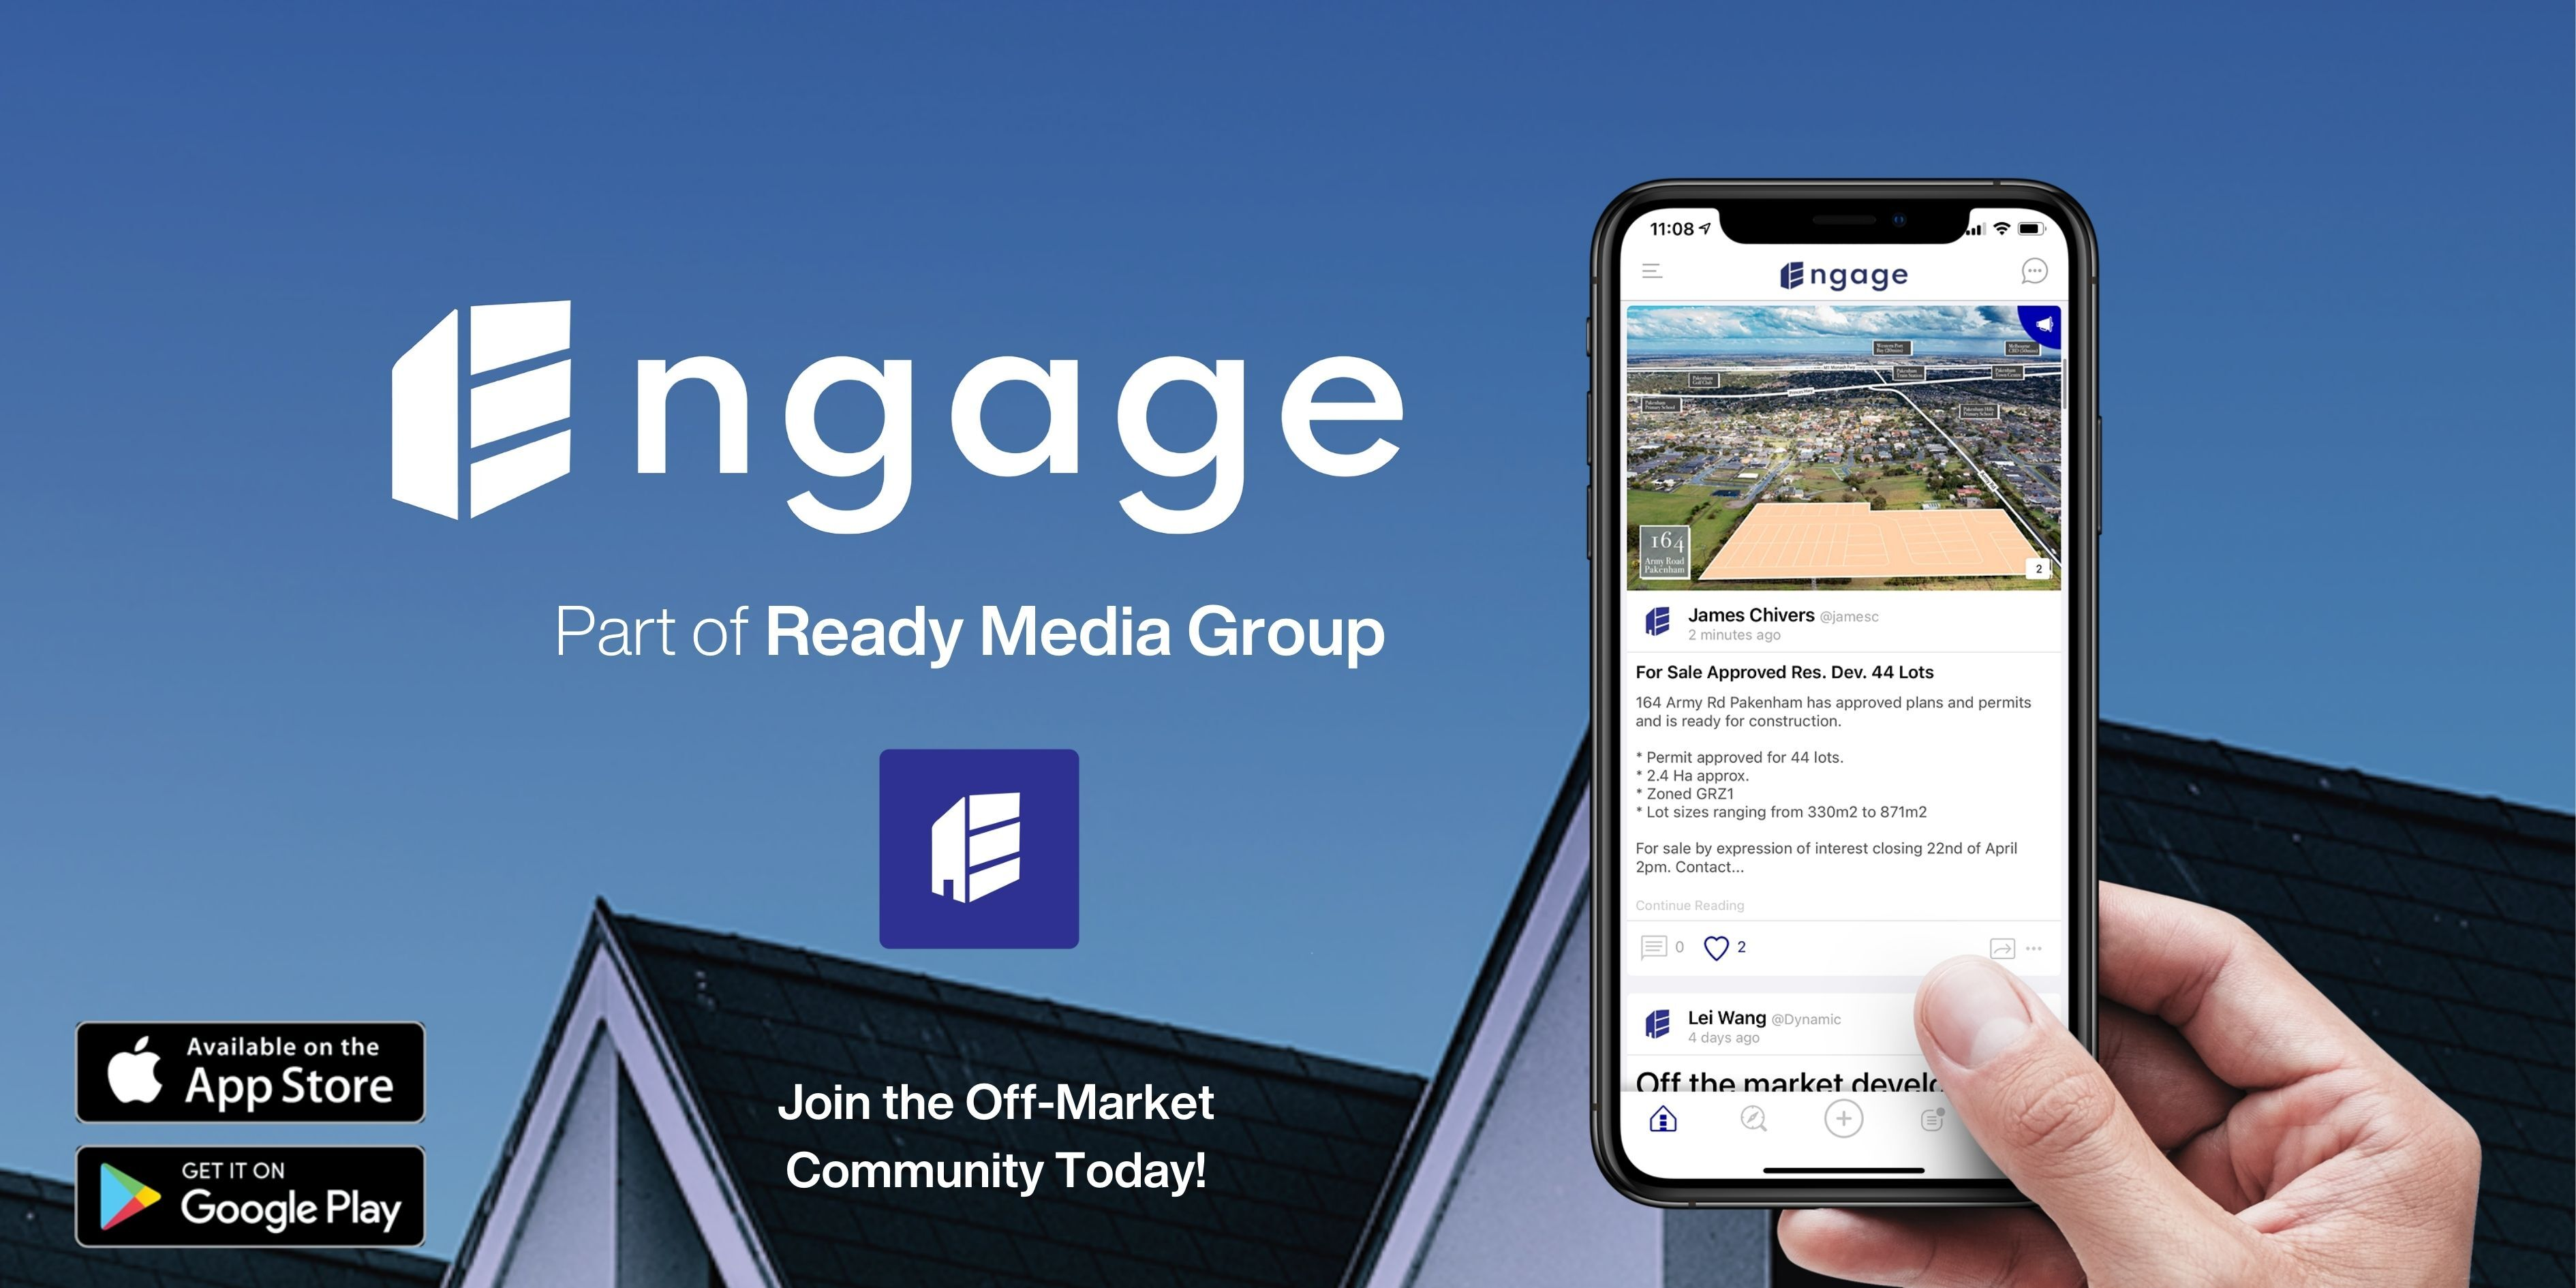 Off-Market App 'Engage' Continues to Grow Amongst Agents & Developers